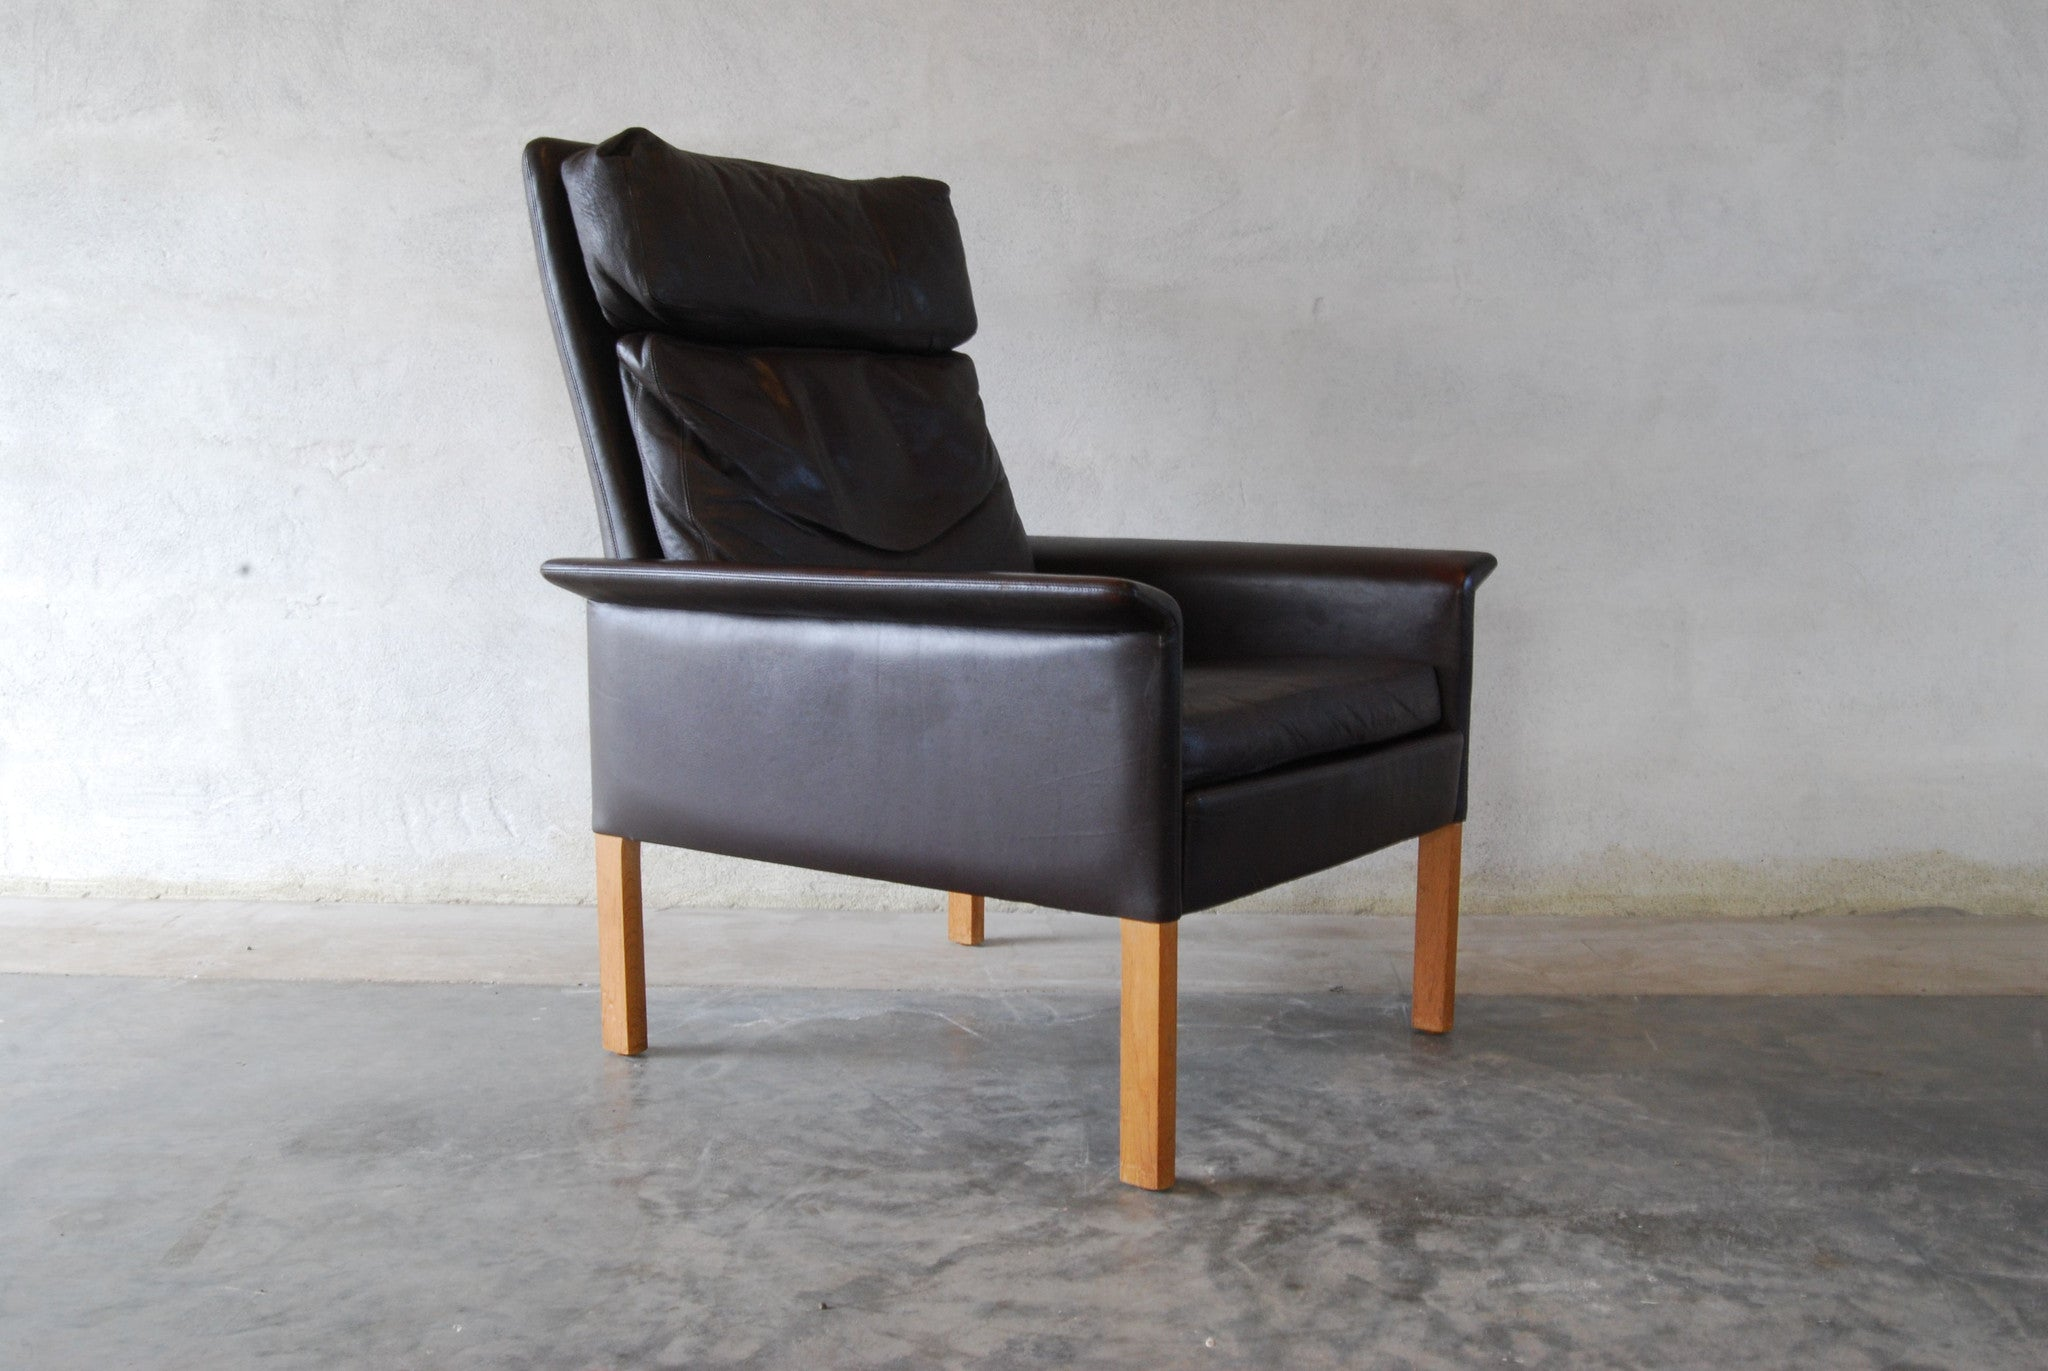 Lounge chair by Hans Olsen